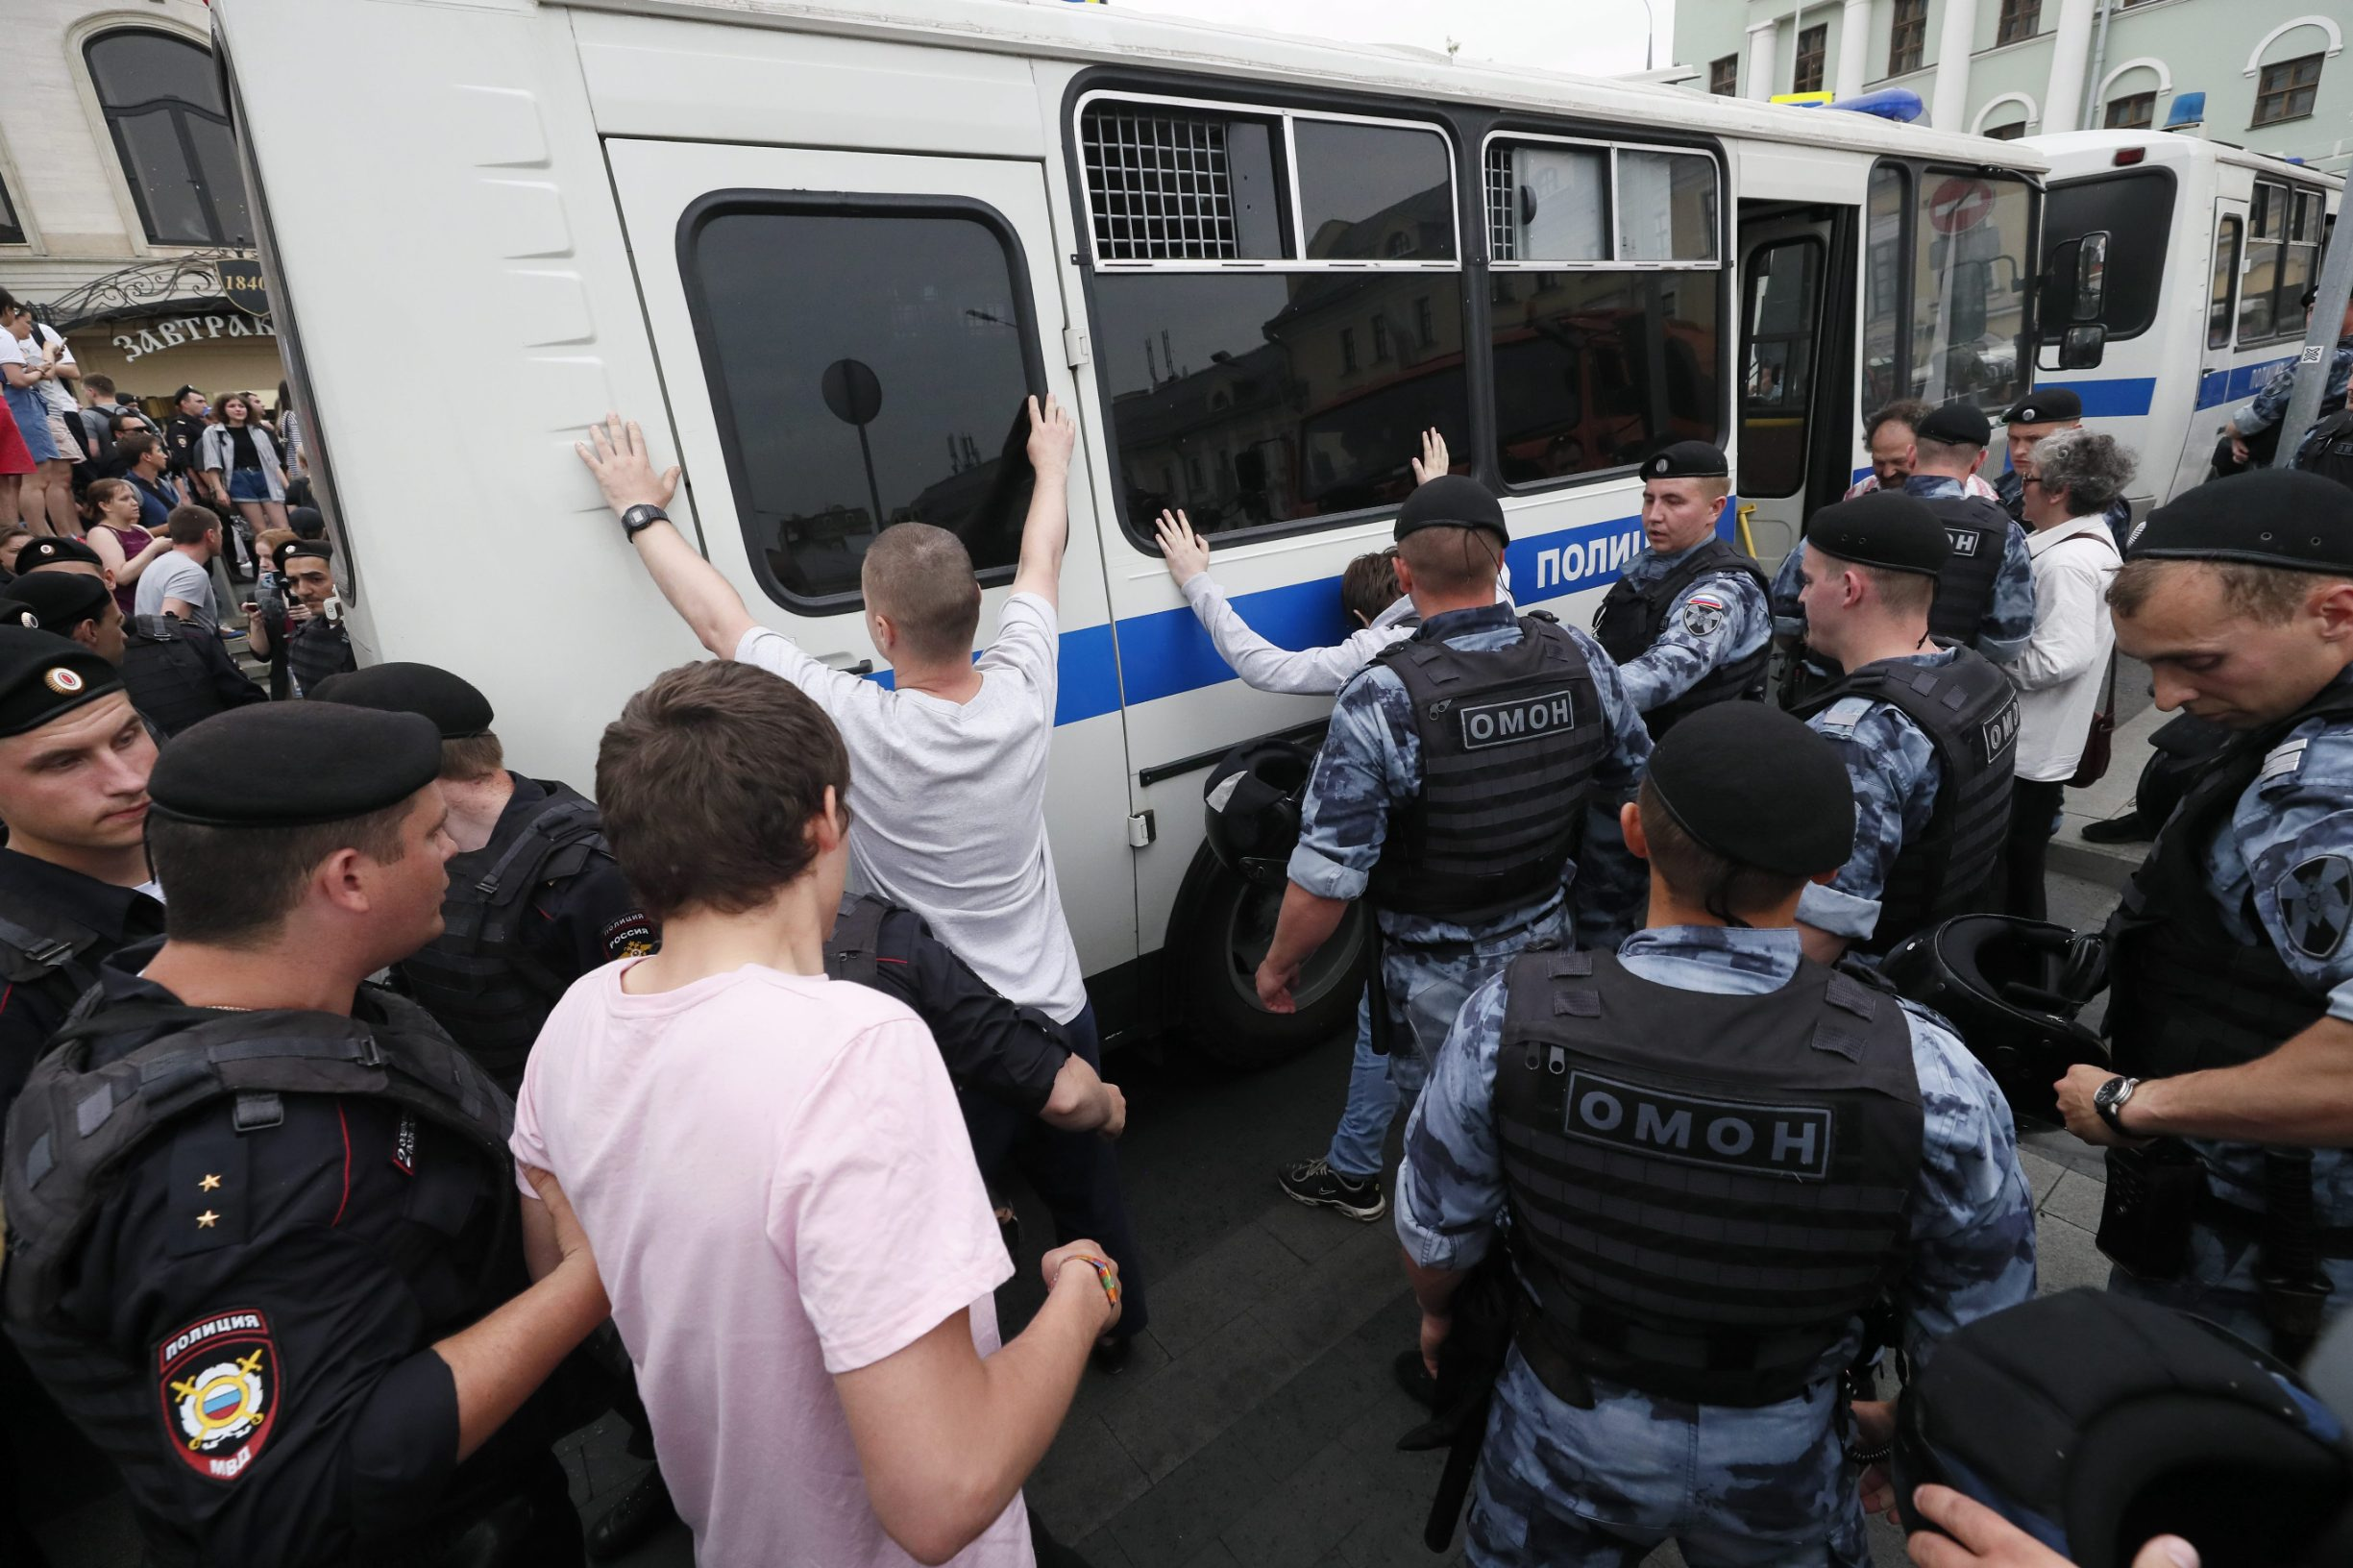 2019-06-12T102012Z_316774789_UP1EF6C0SPO10_RTRMADP_3_RUSSIA-JOURNALIST-PROTESTS